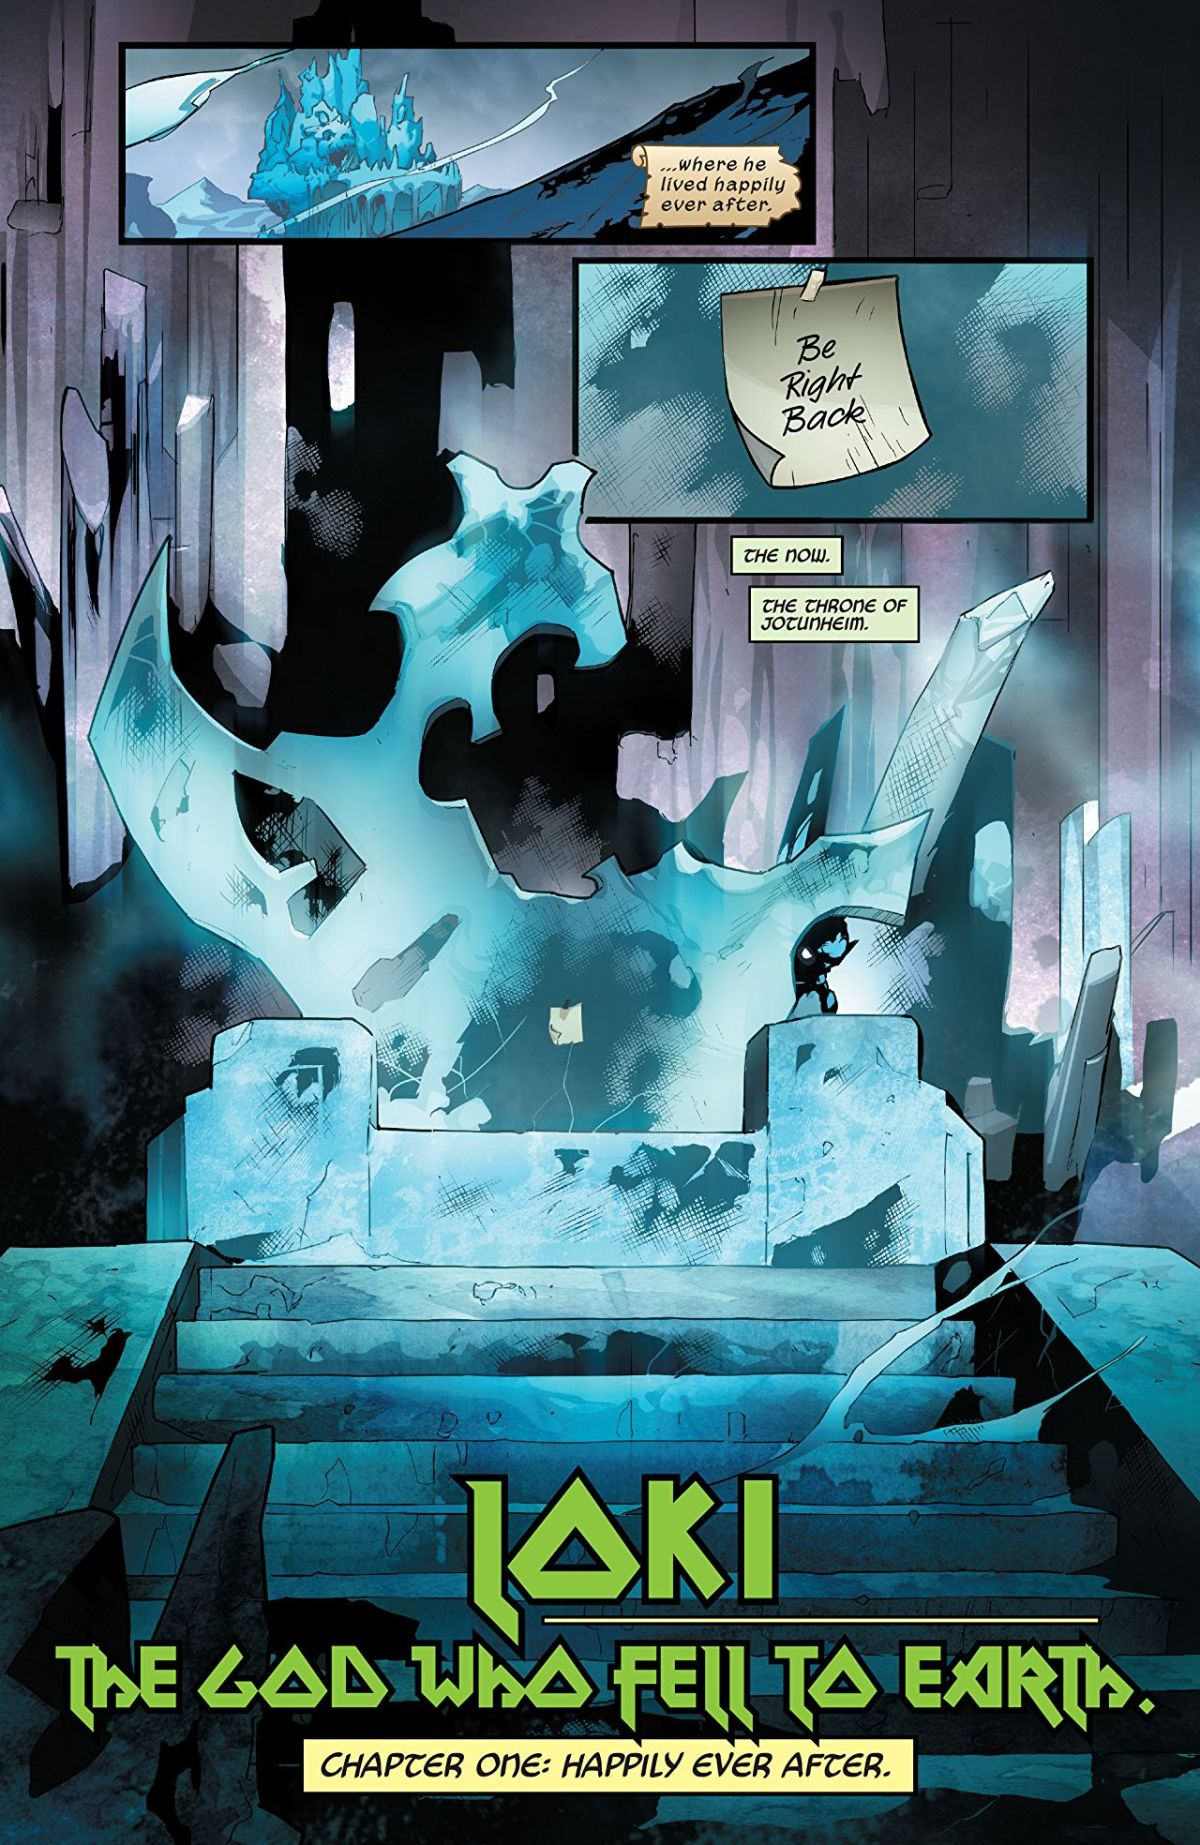 Loki #1: Page 3, The Lonely Throne Of Jotunheim.